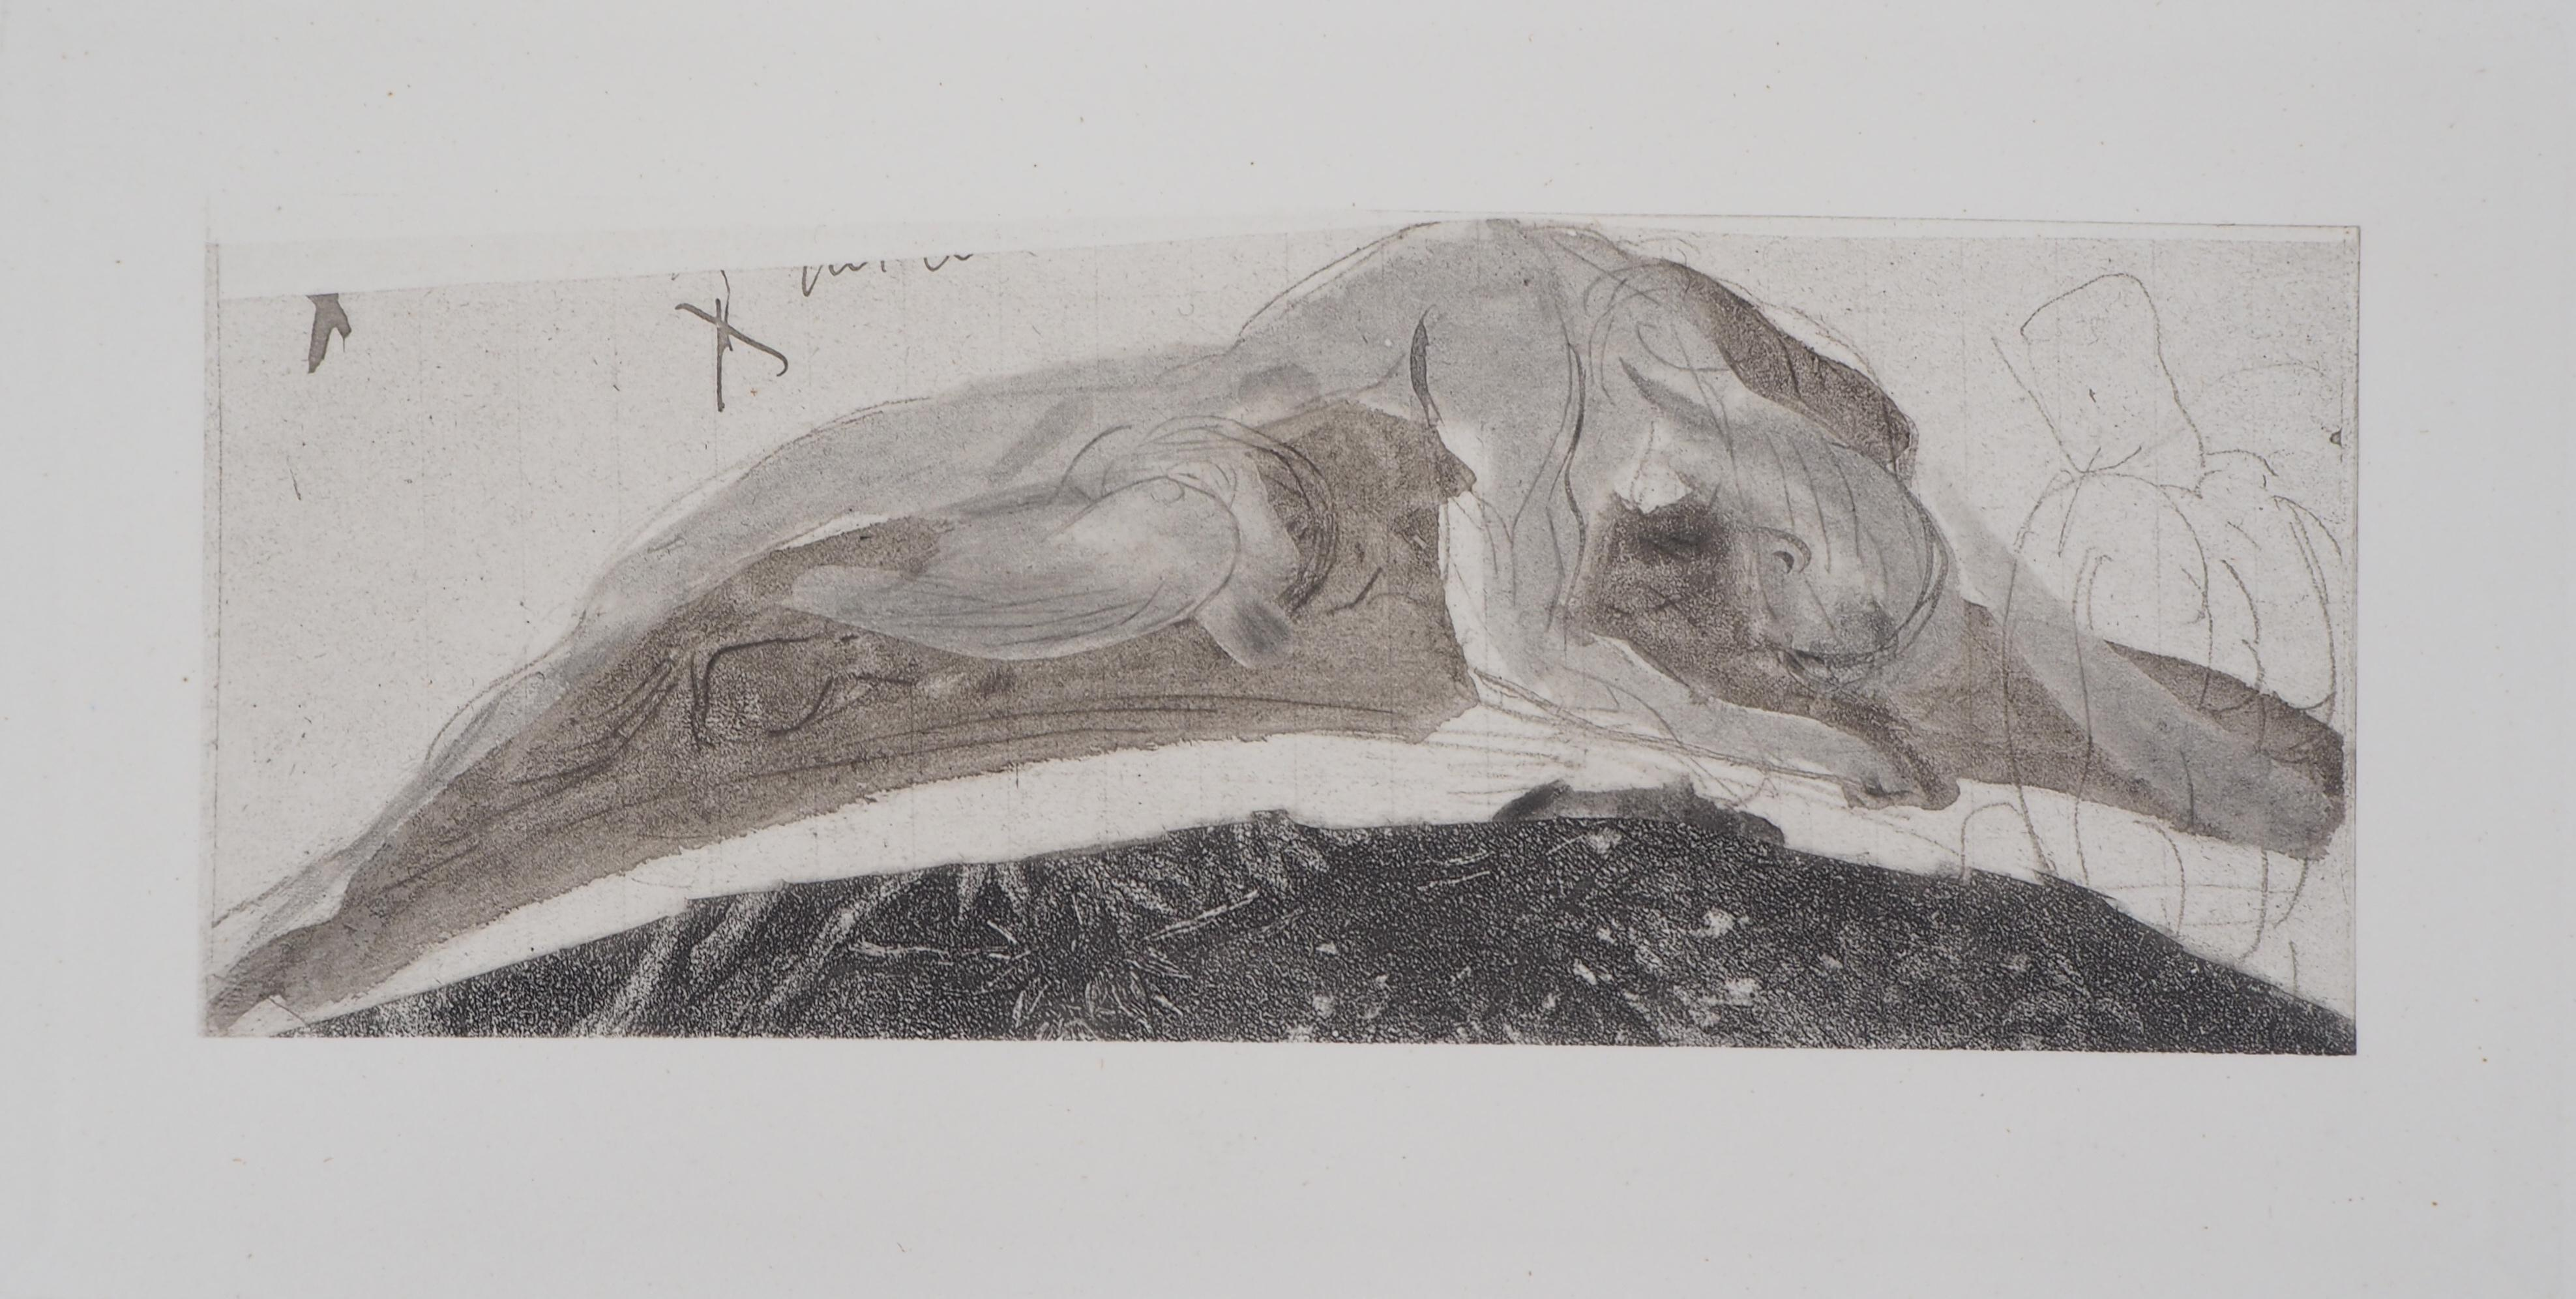 Attached to the Rock - Etching, 1897